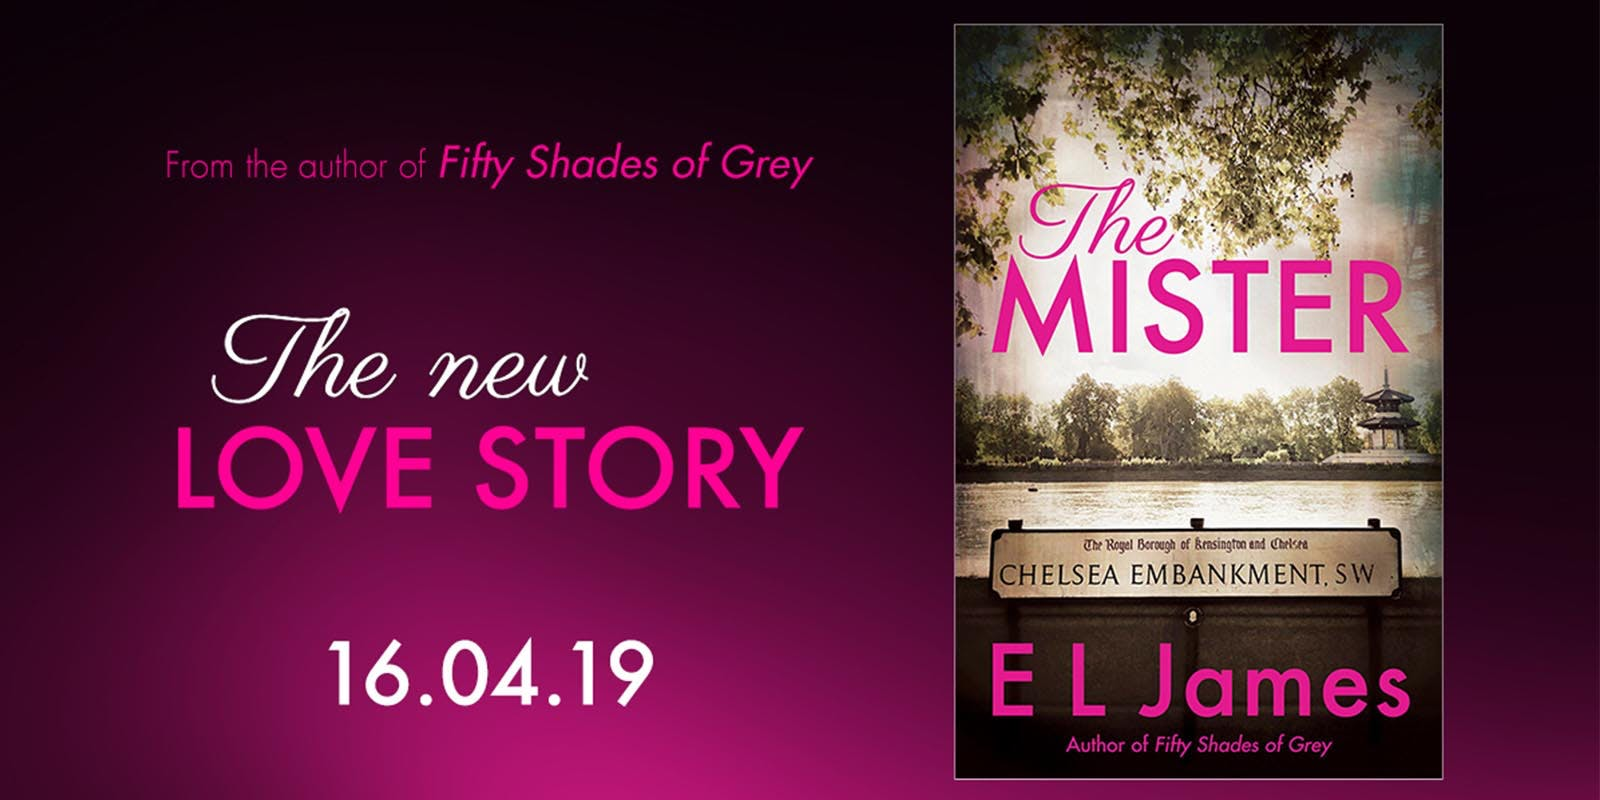 A new novel from E.L James